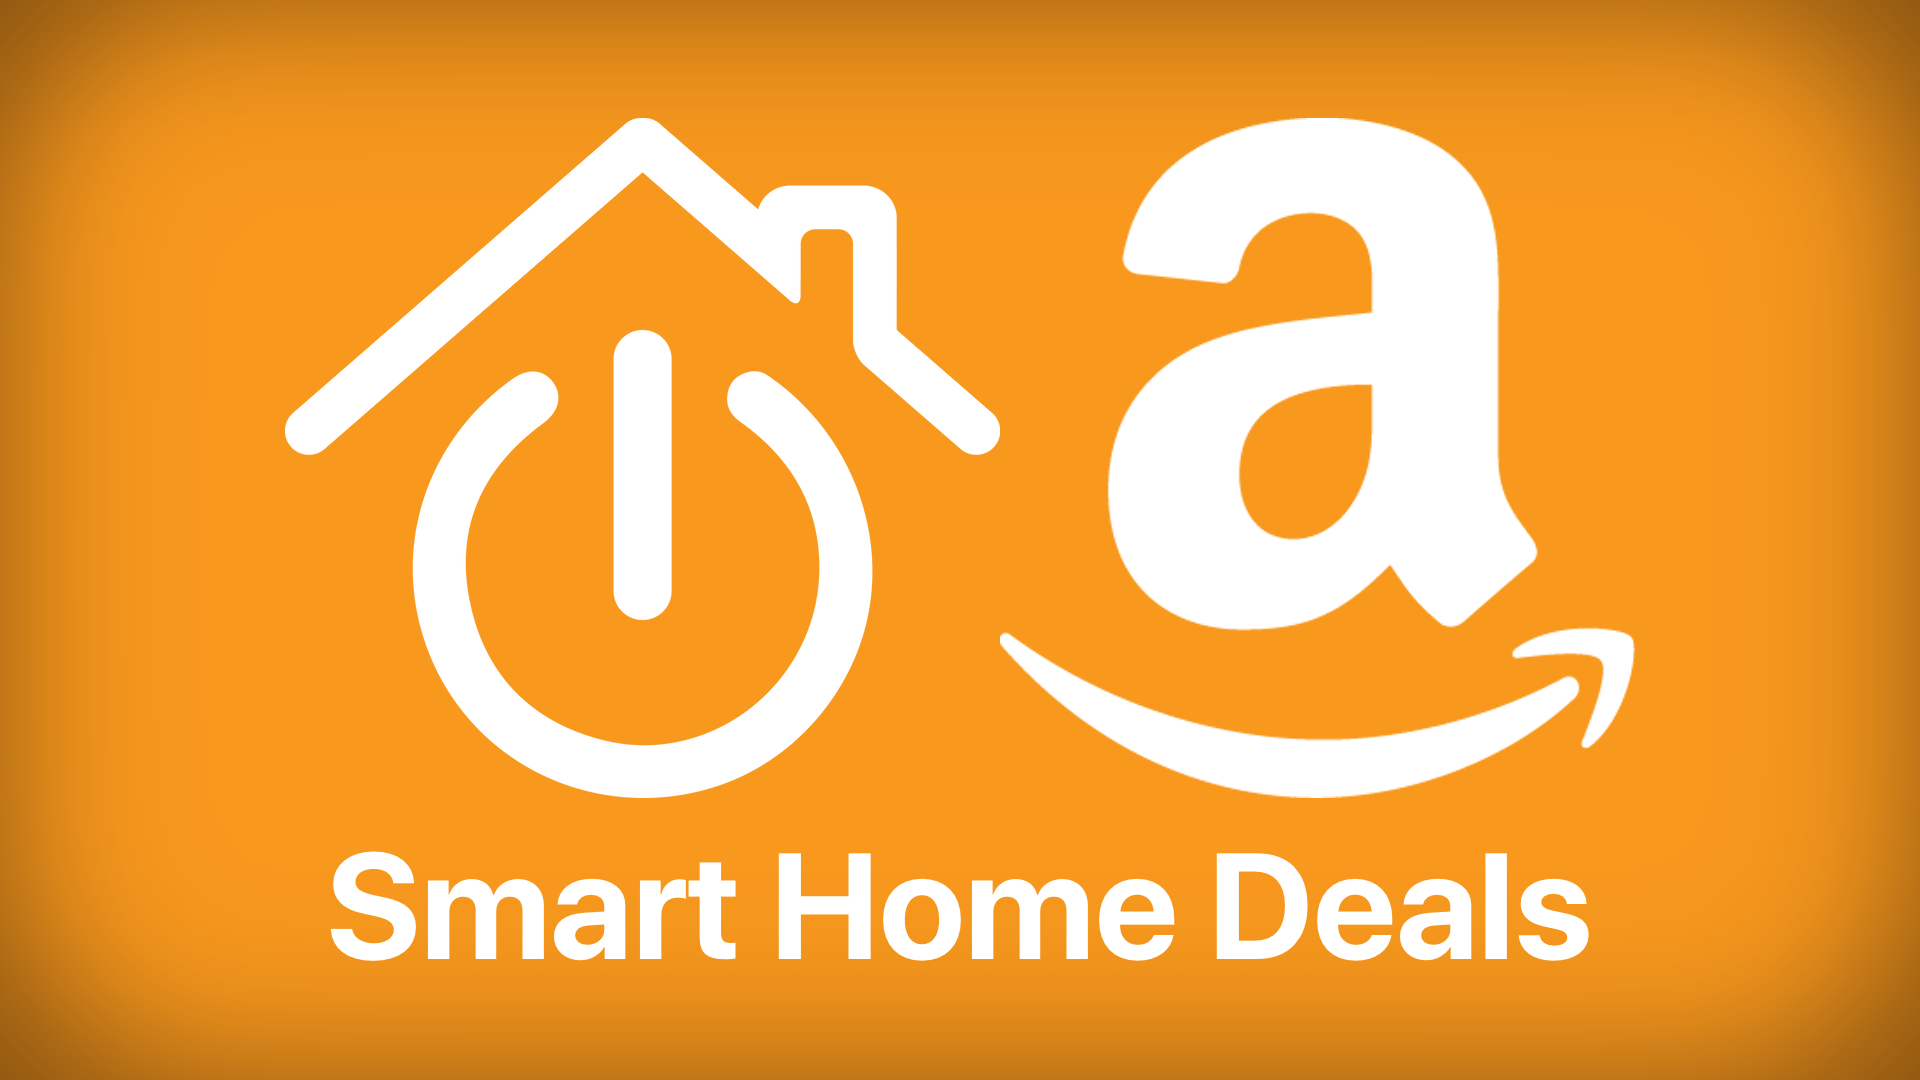 Amazon Smart Home List Smart Home Products On Discount For Amazon Prime Day